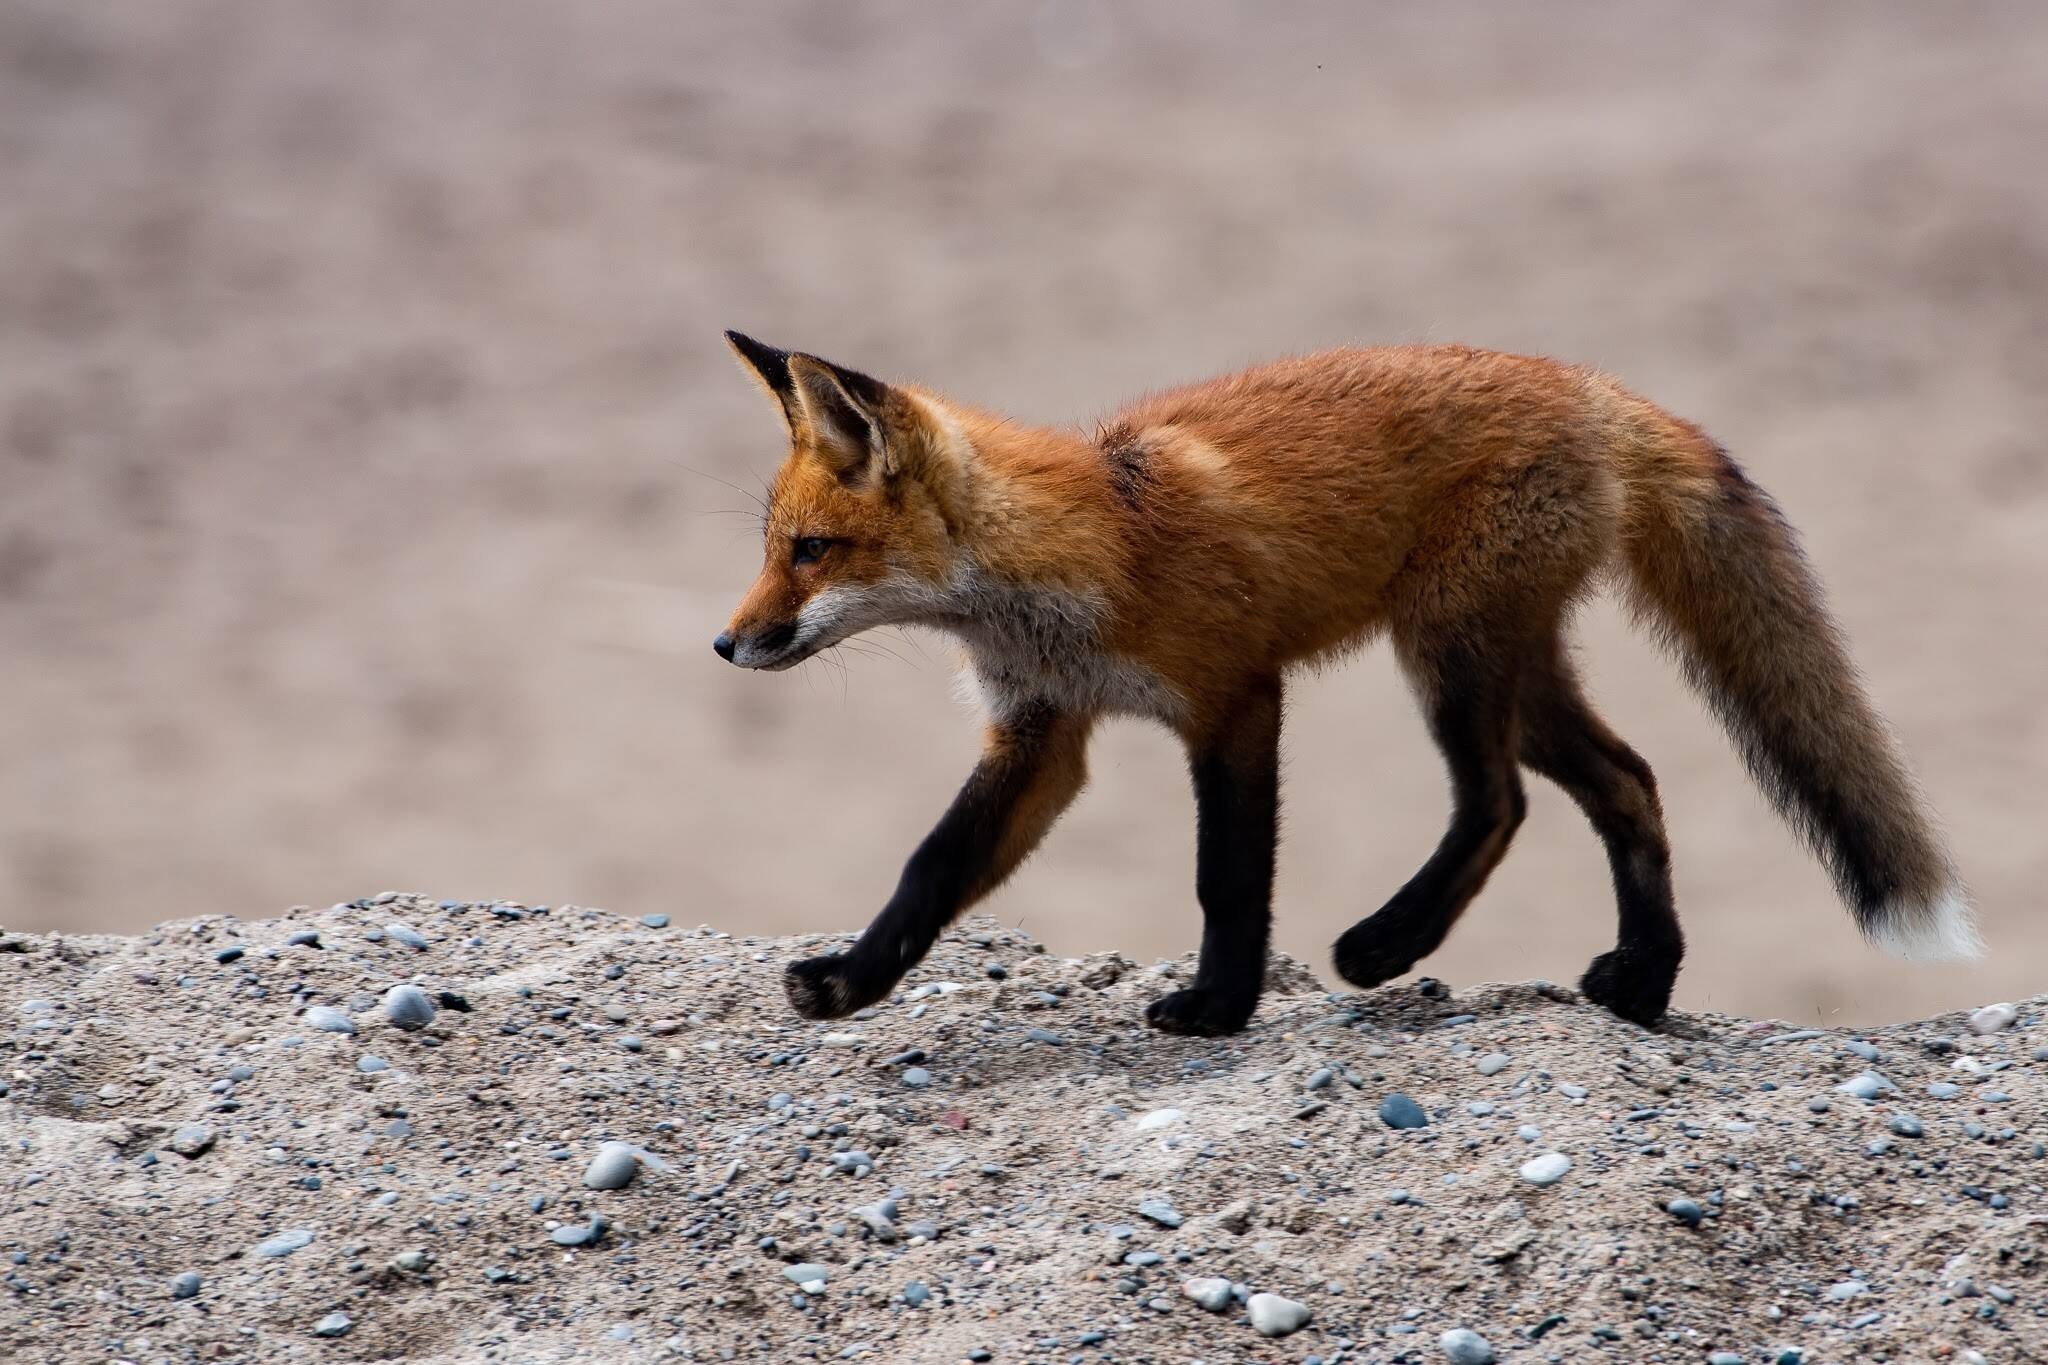 Volunteers To Stop Protecting Family Of Foxes In Toronto After Threats And Verbal Abuse